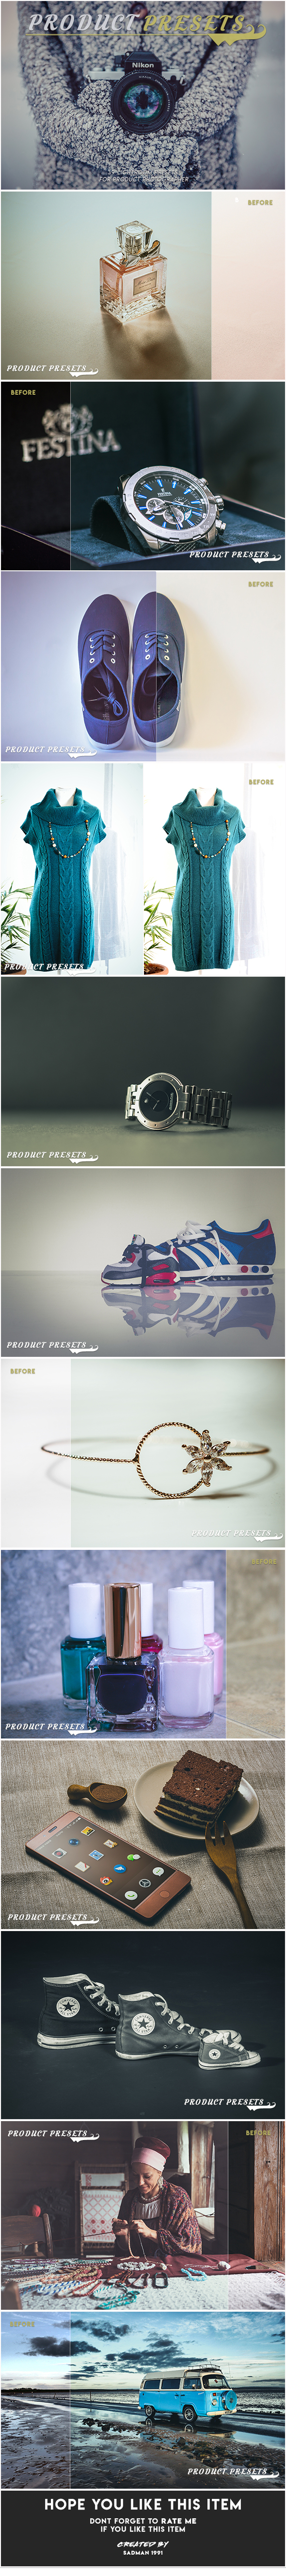 Product Presets Pack - Lightroom Presets Add-ons